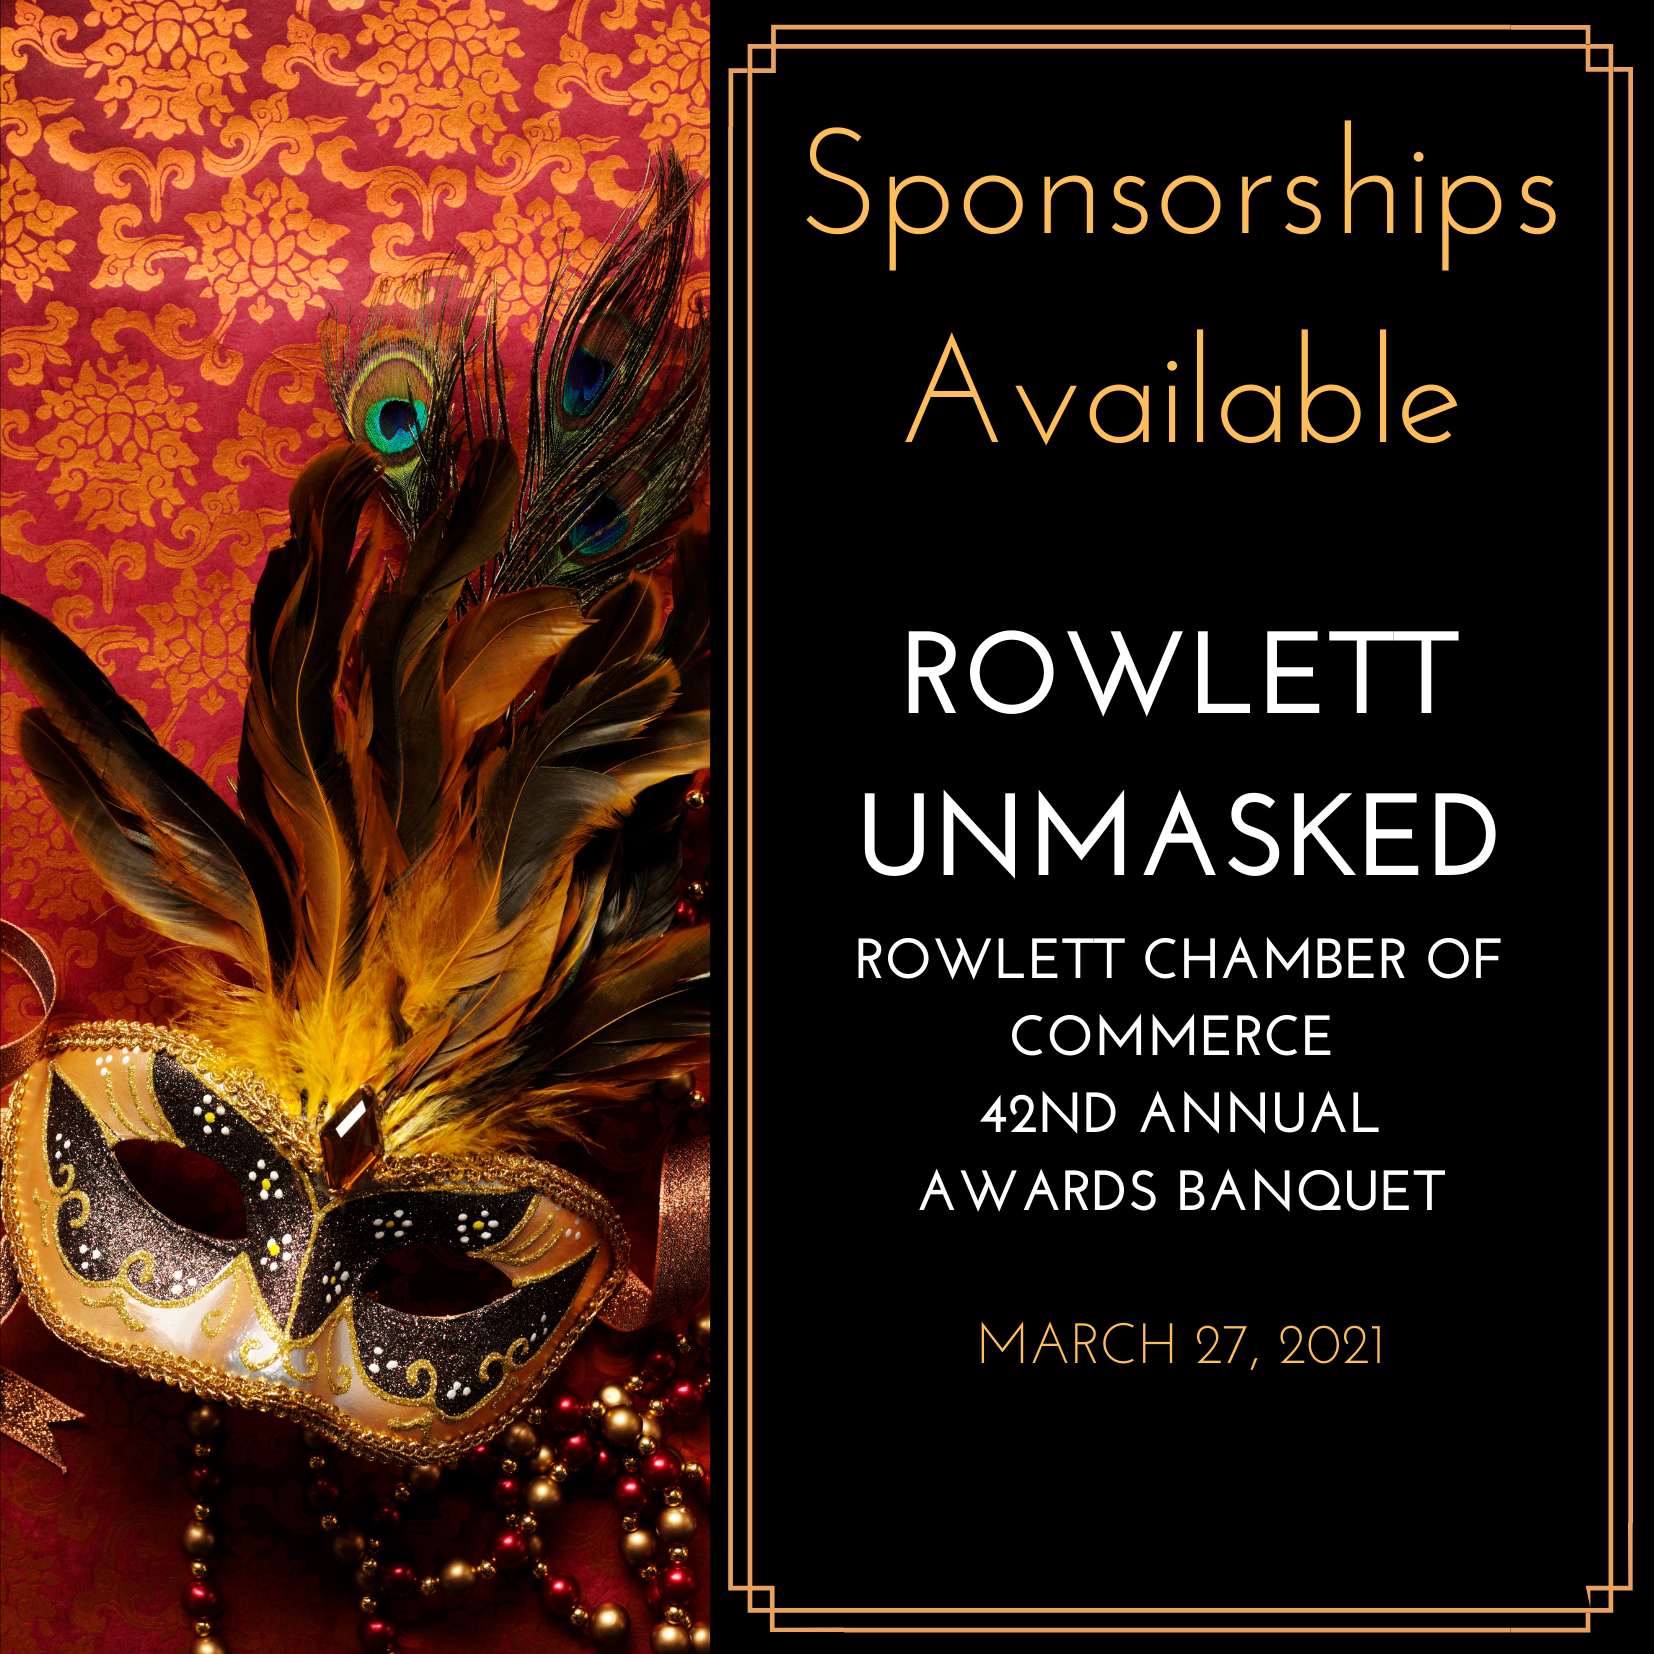 Awards-Banquet-Sponsorships-Available.png